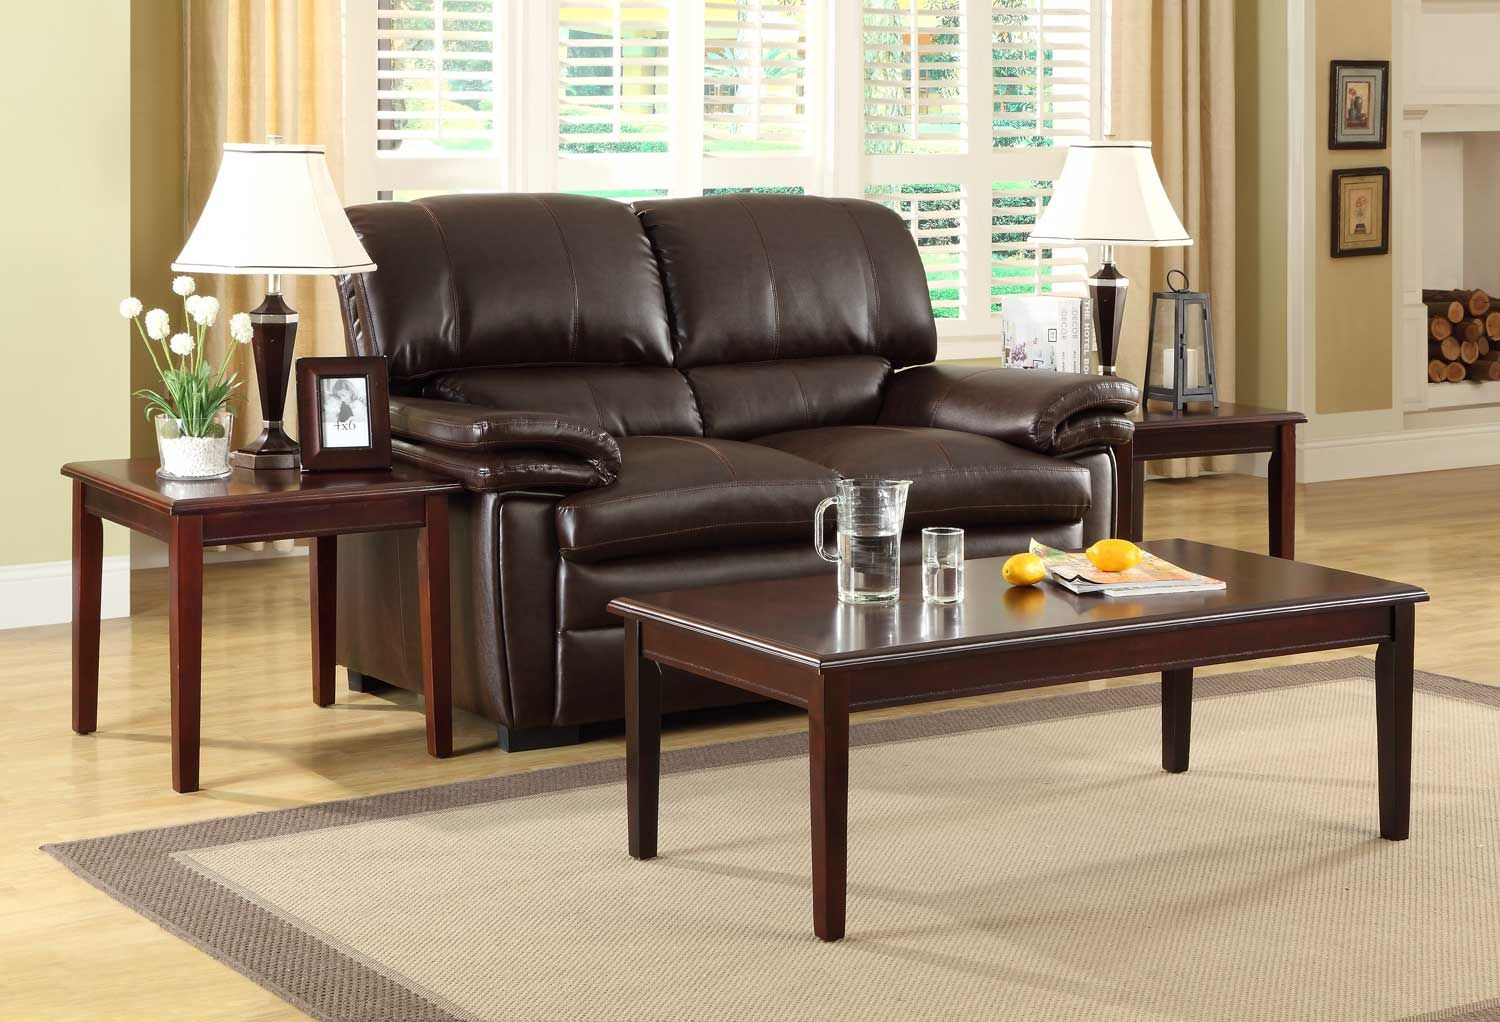 Homelegance Arlo 3pc Occasional Set Cherry A Perfect Addition In Traditional Or Transitional Spaces The Arlo Collect Furniture Furnishing Small Spaces Home [ 1022 x 1500 Pixel ]